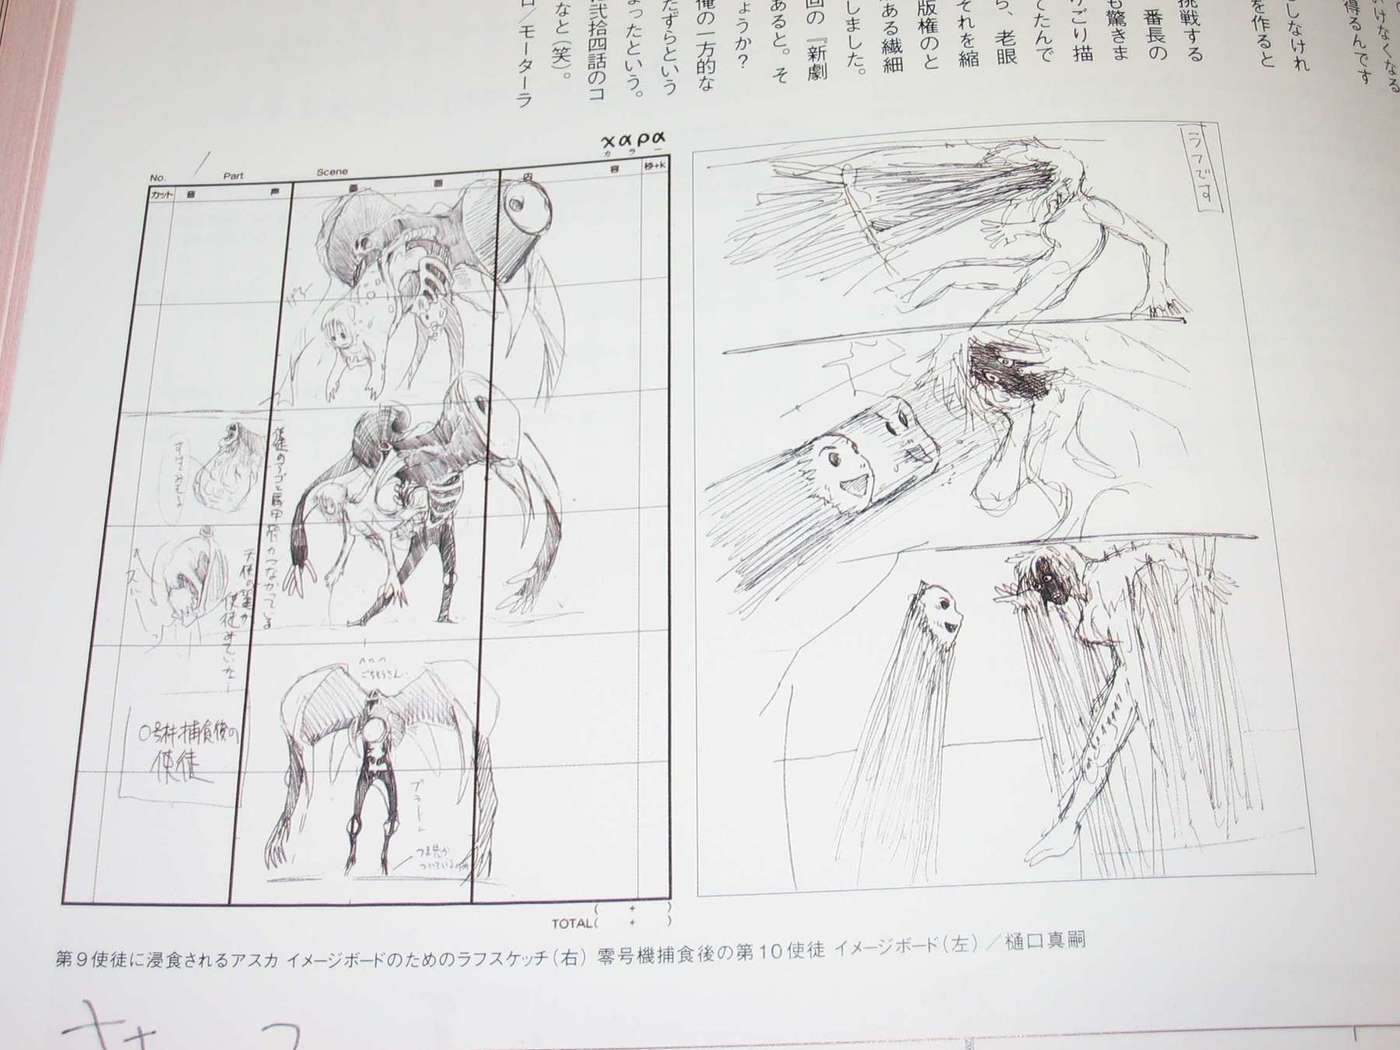 Storyboard: Asuka's face being ripped off while being mentally assaulted by an Angel (4)